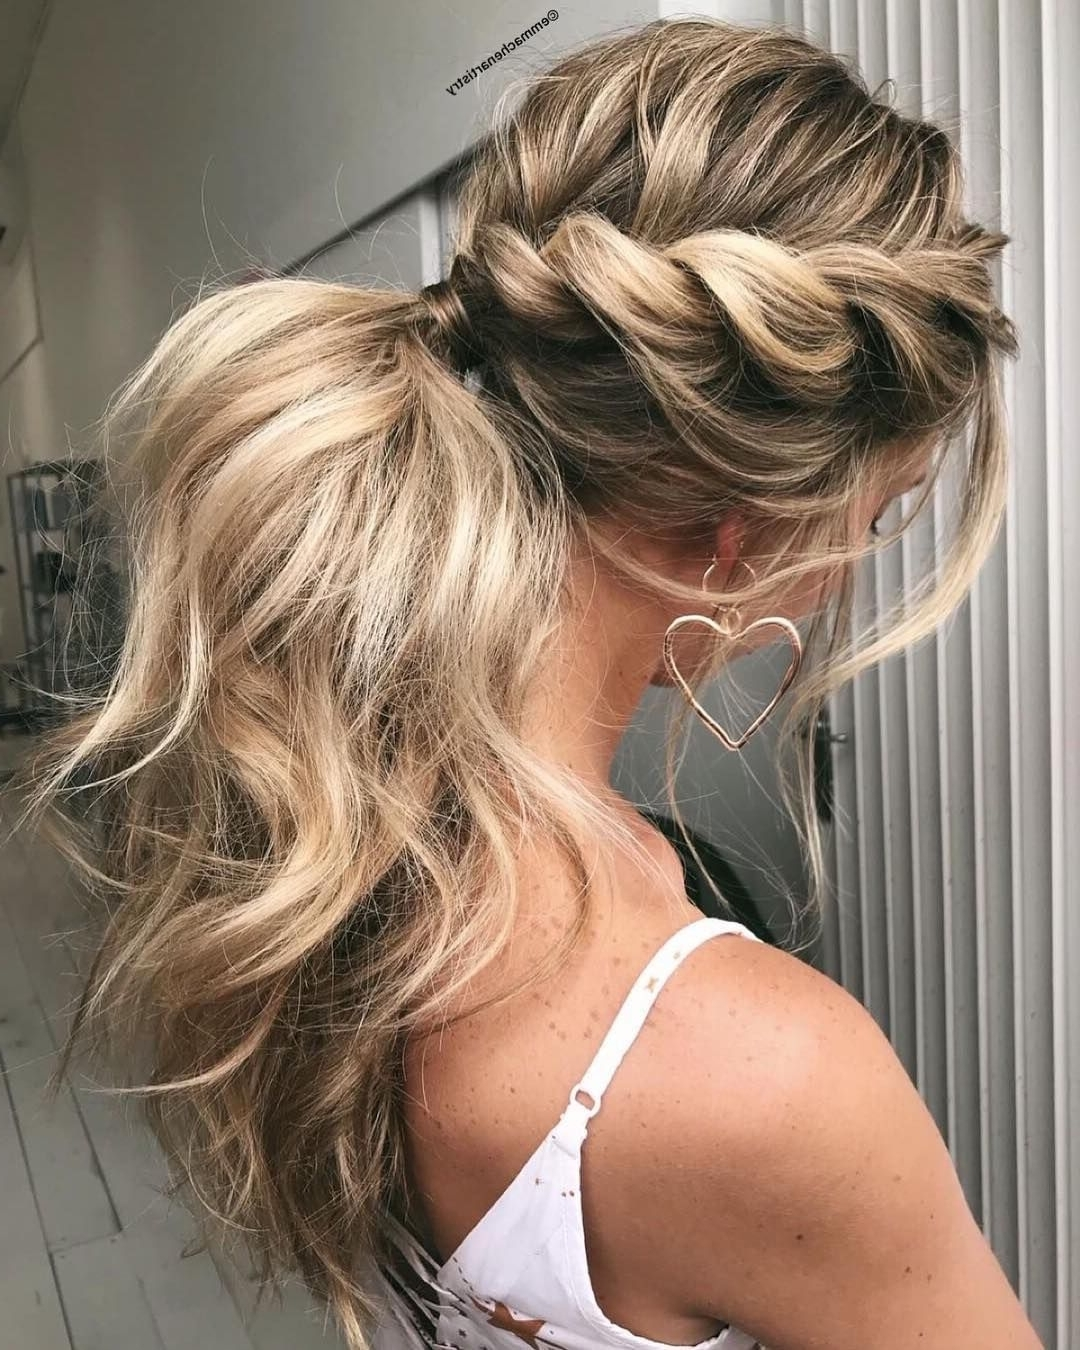 Newest Twisted Pony Hairstyles Pertaining To Twist + Ponytail Hairstyle Ideas #braids #hairstyles #hairstyle (View 10 of 20)